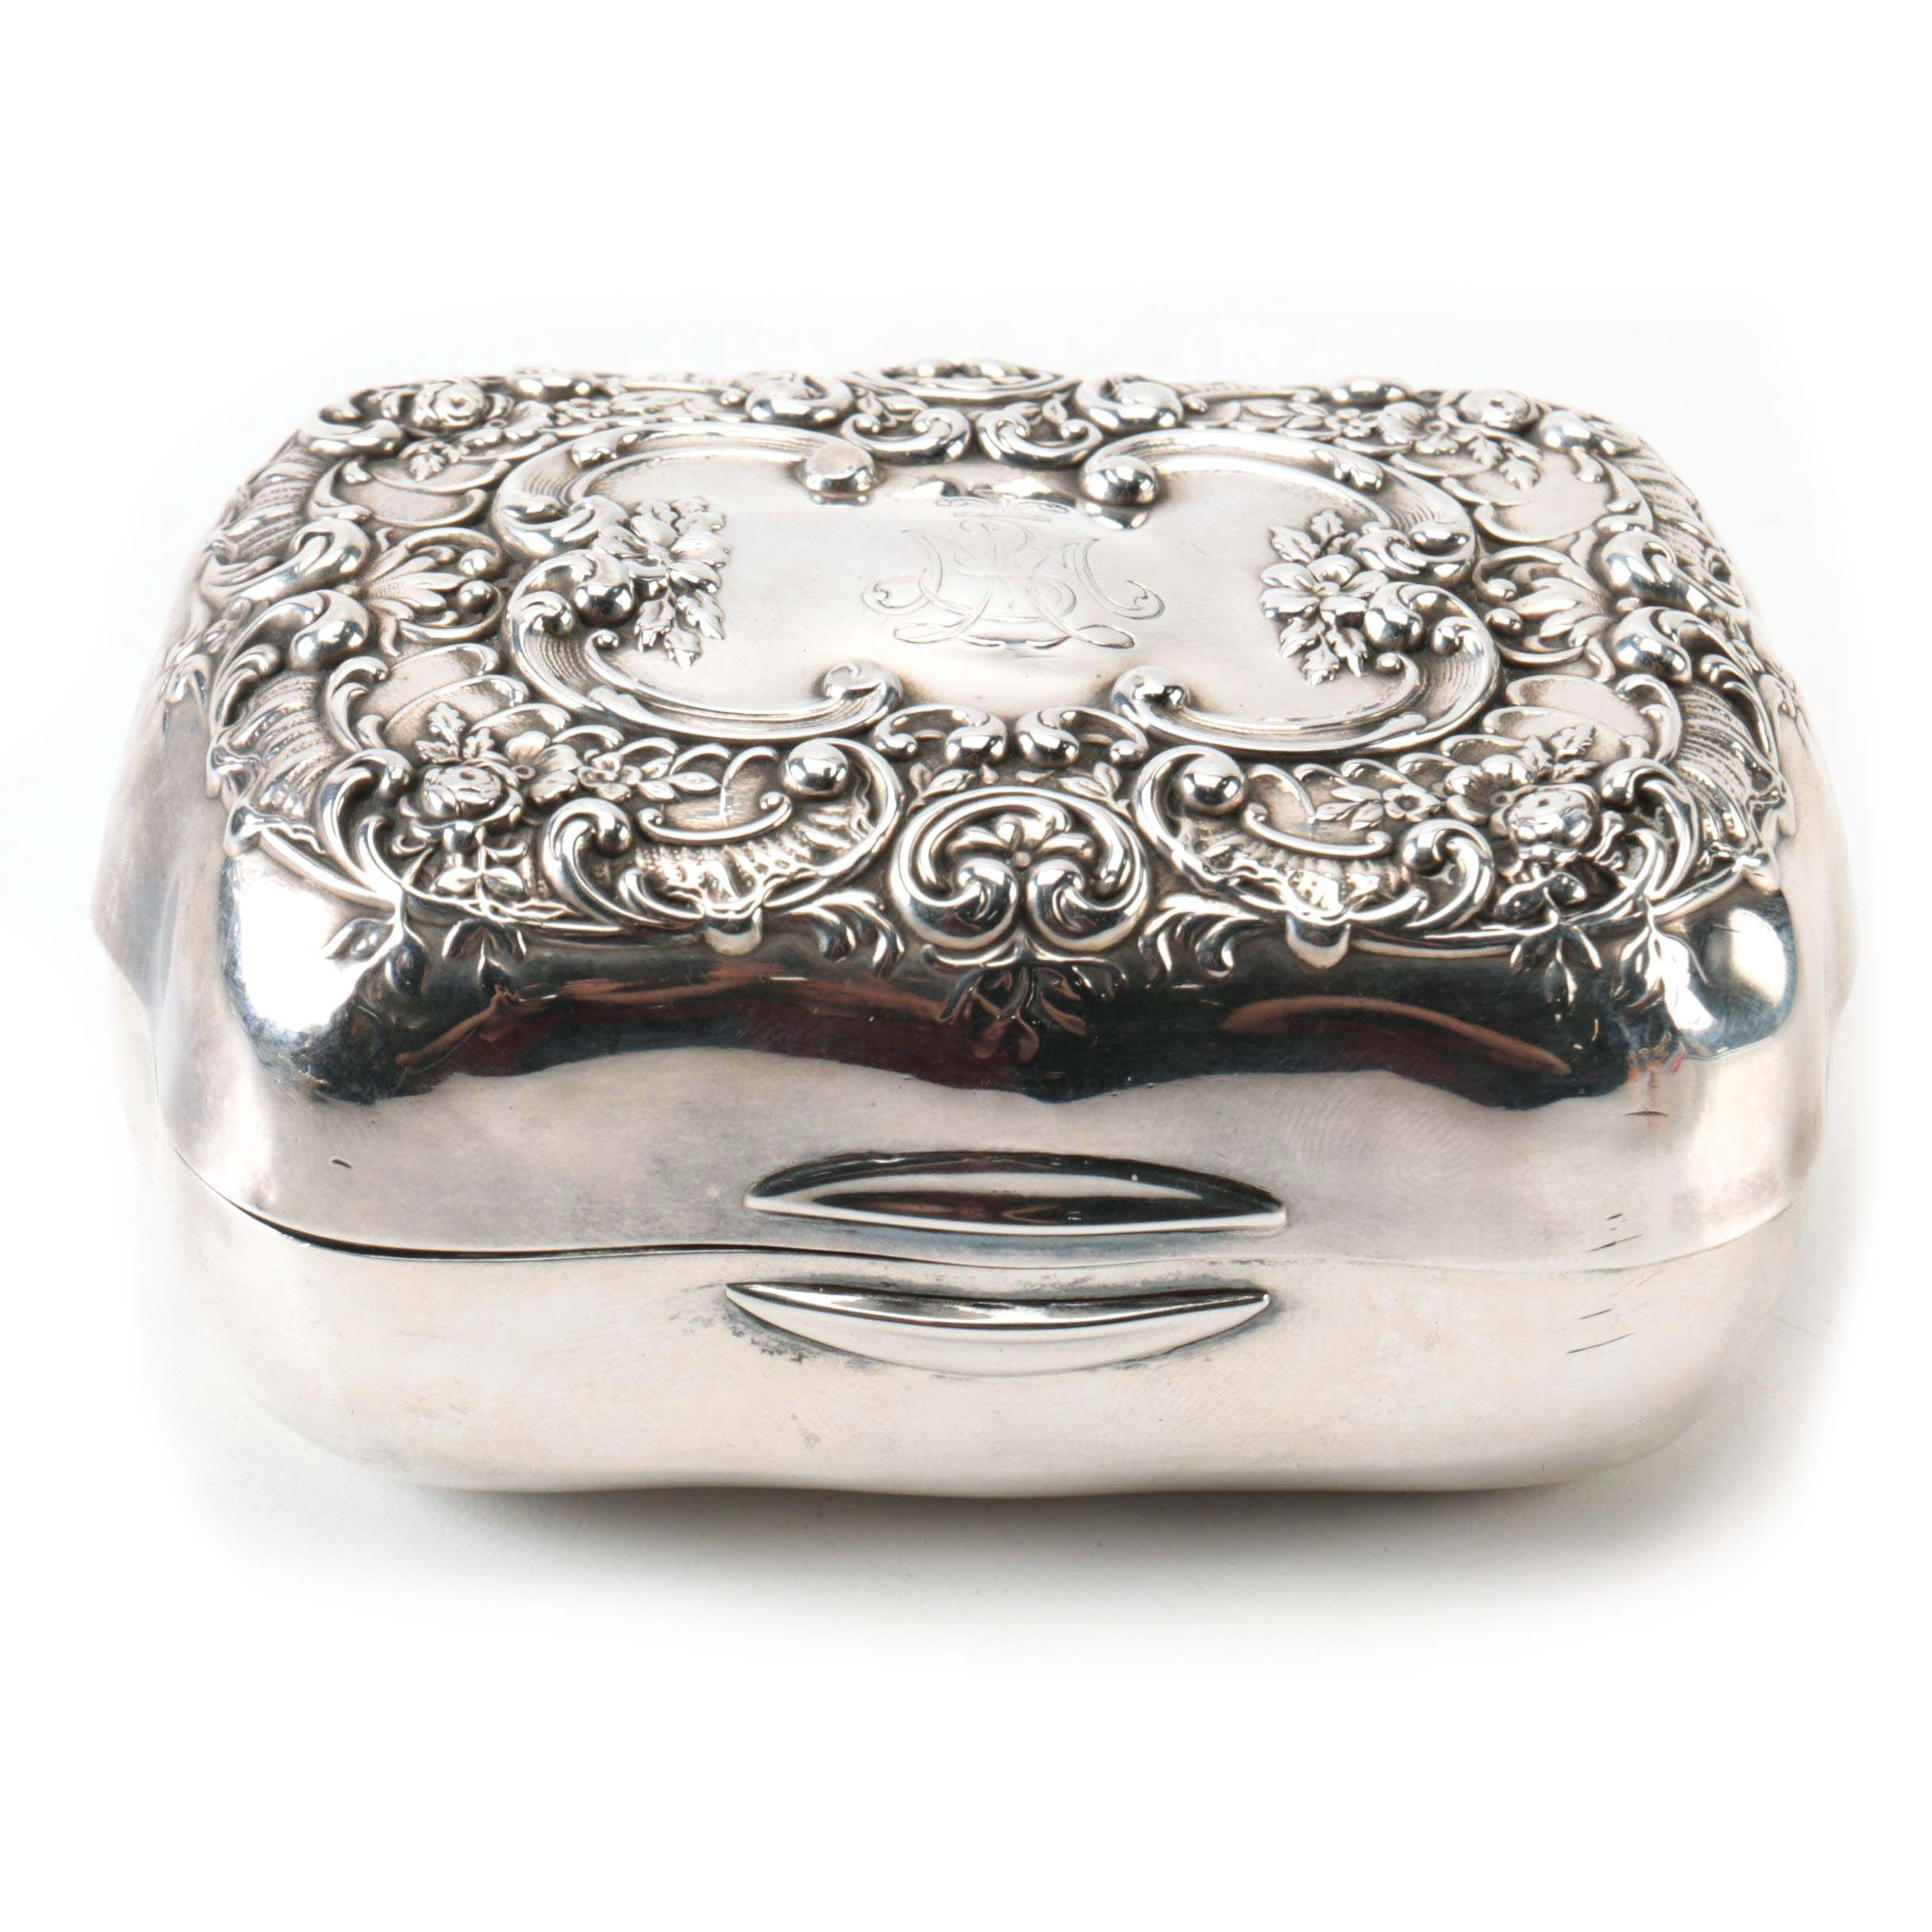 1901 Gorham Sterling Silver Trinket Box